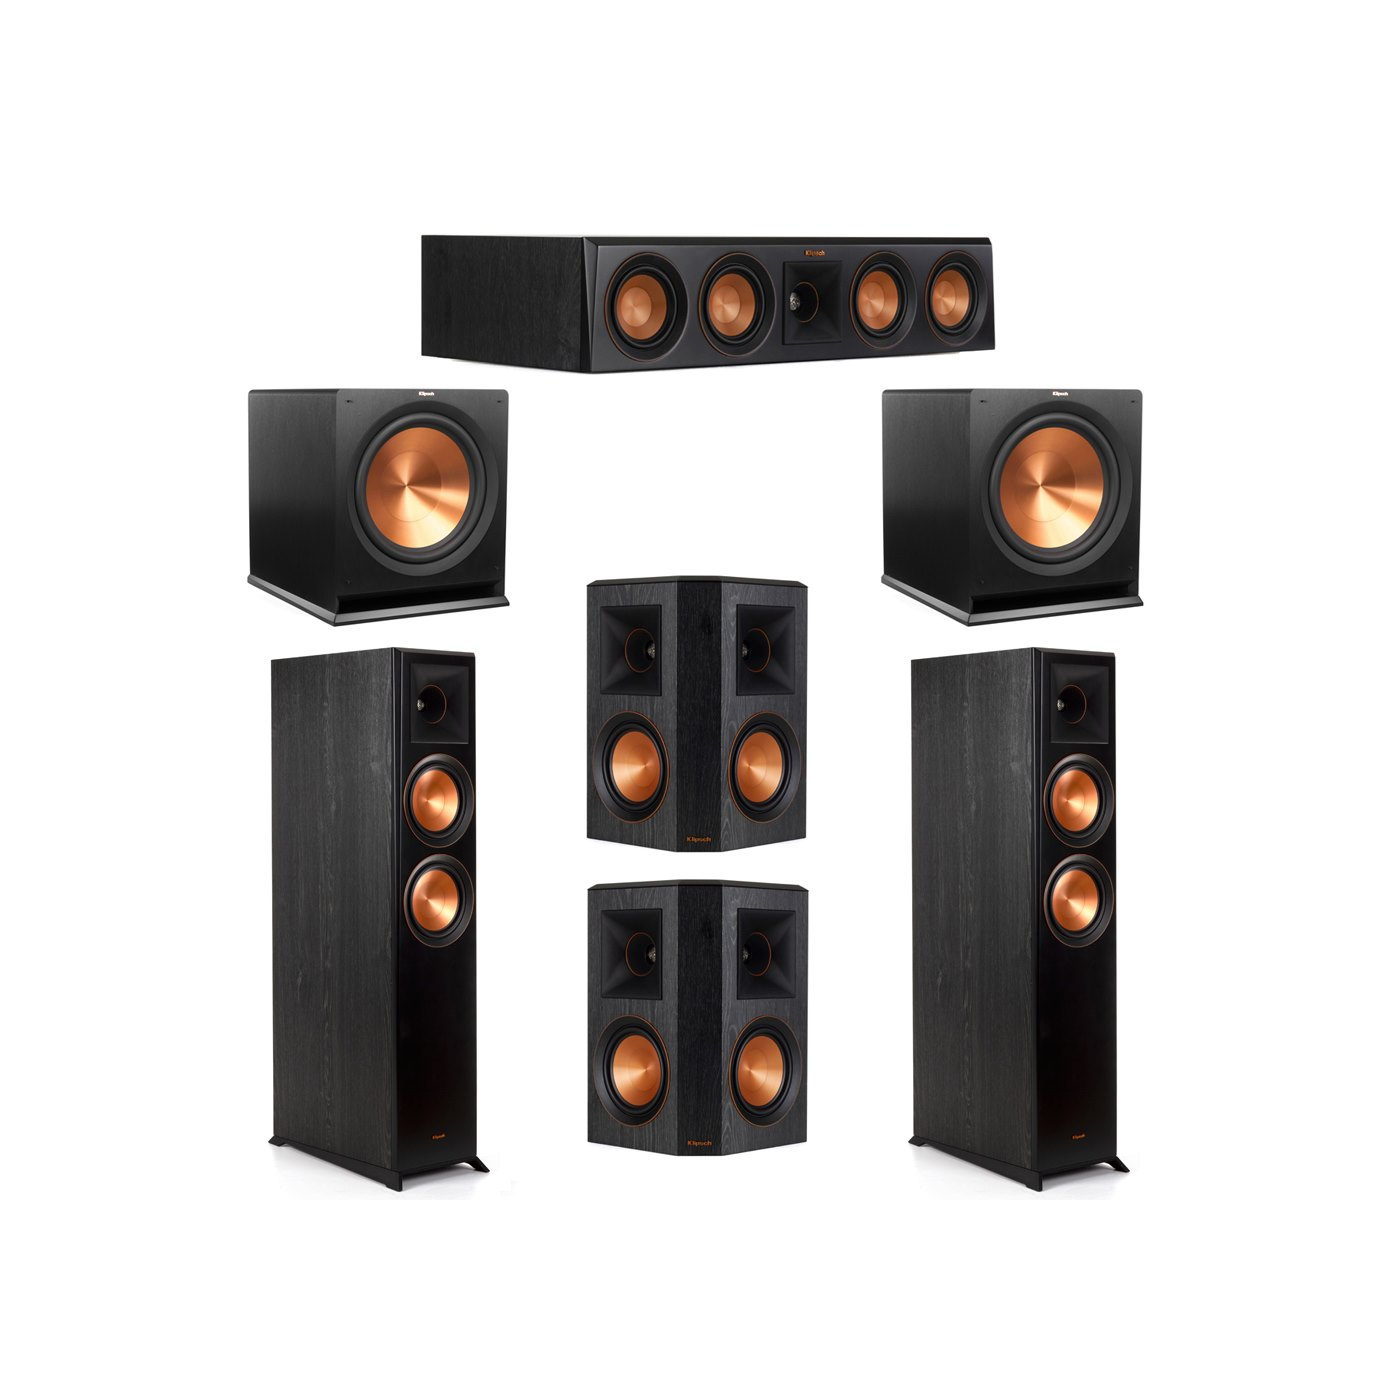 Klipsch 5.2 System with 2 RP-6000F Floorstanding Speakers, 1 Klipsch RP-404C Center Speaker, 2 Klipsch RP-502S Surround Speakers, 2 Klipsch R-115SW Subwoofers